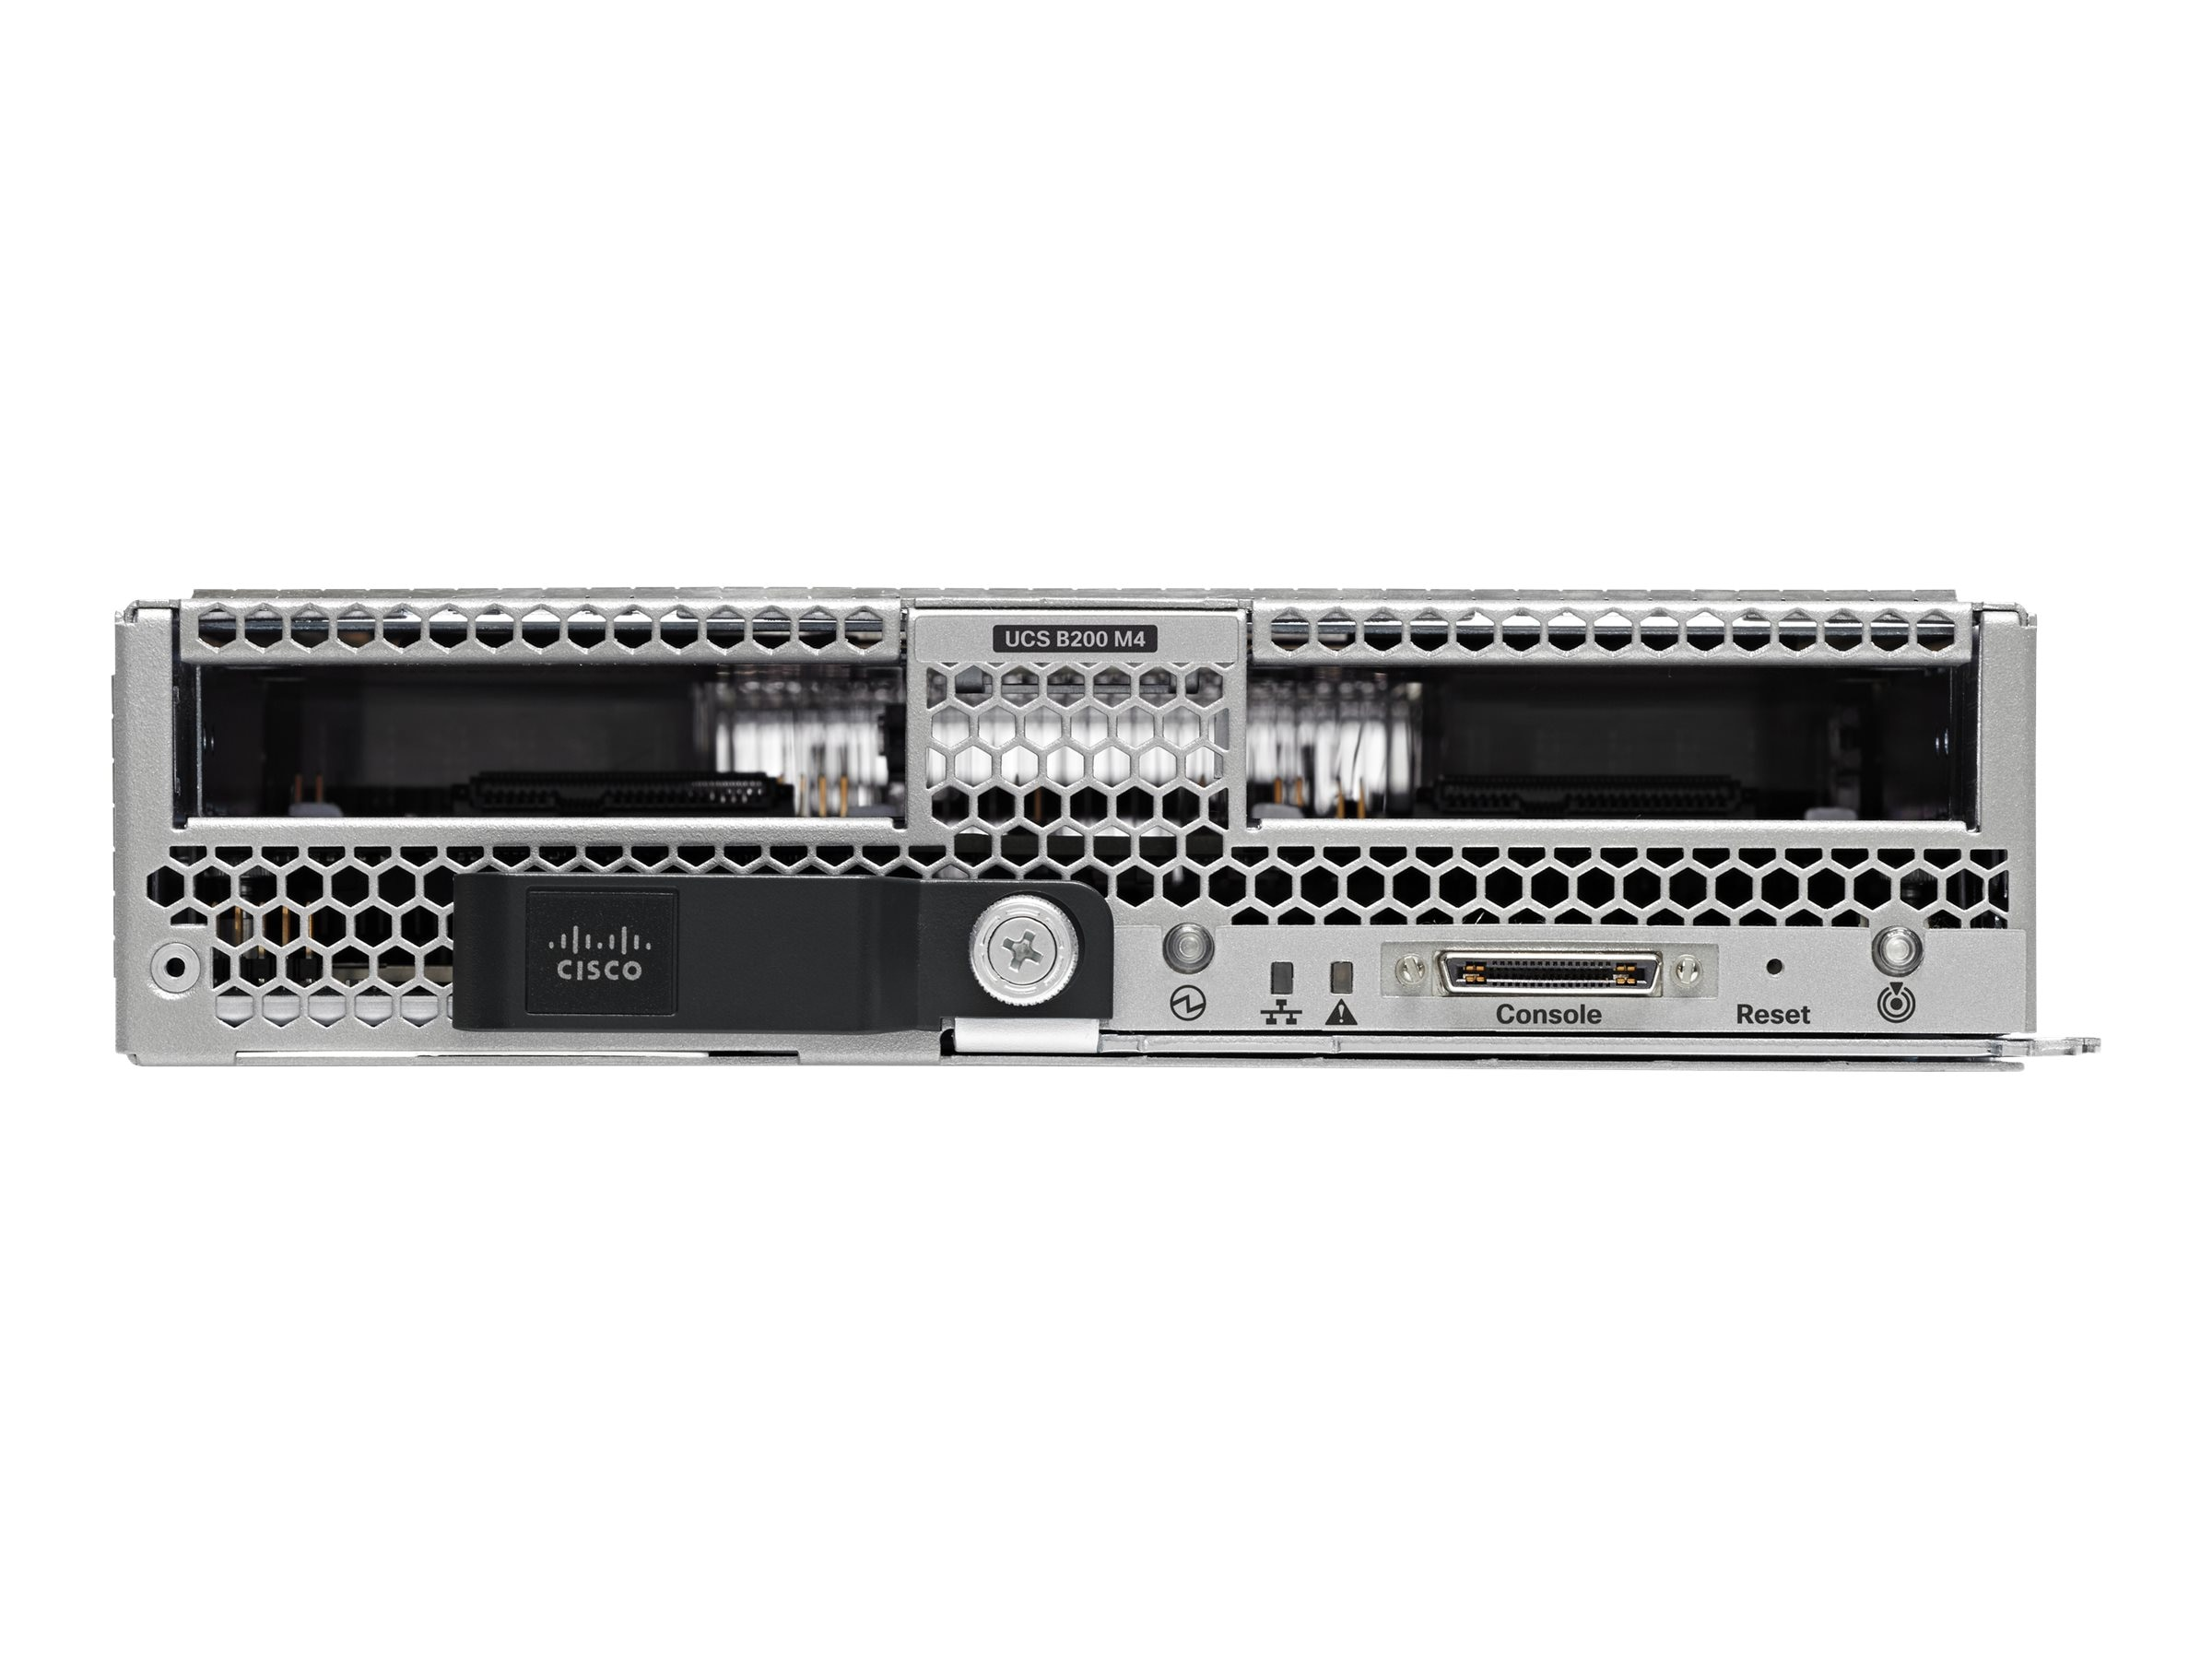 Cisco UCS SP Select B200 M4 Hi-Frequency 2 Blade (2x)Xeon E5-2637 v3 256GB VIC1340, UCS-SP-B200M4-F2, 30859641, Servers - Blade